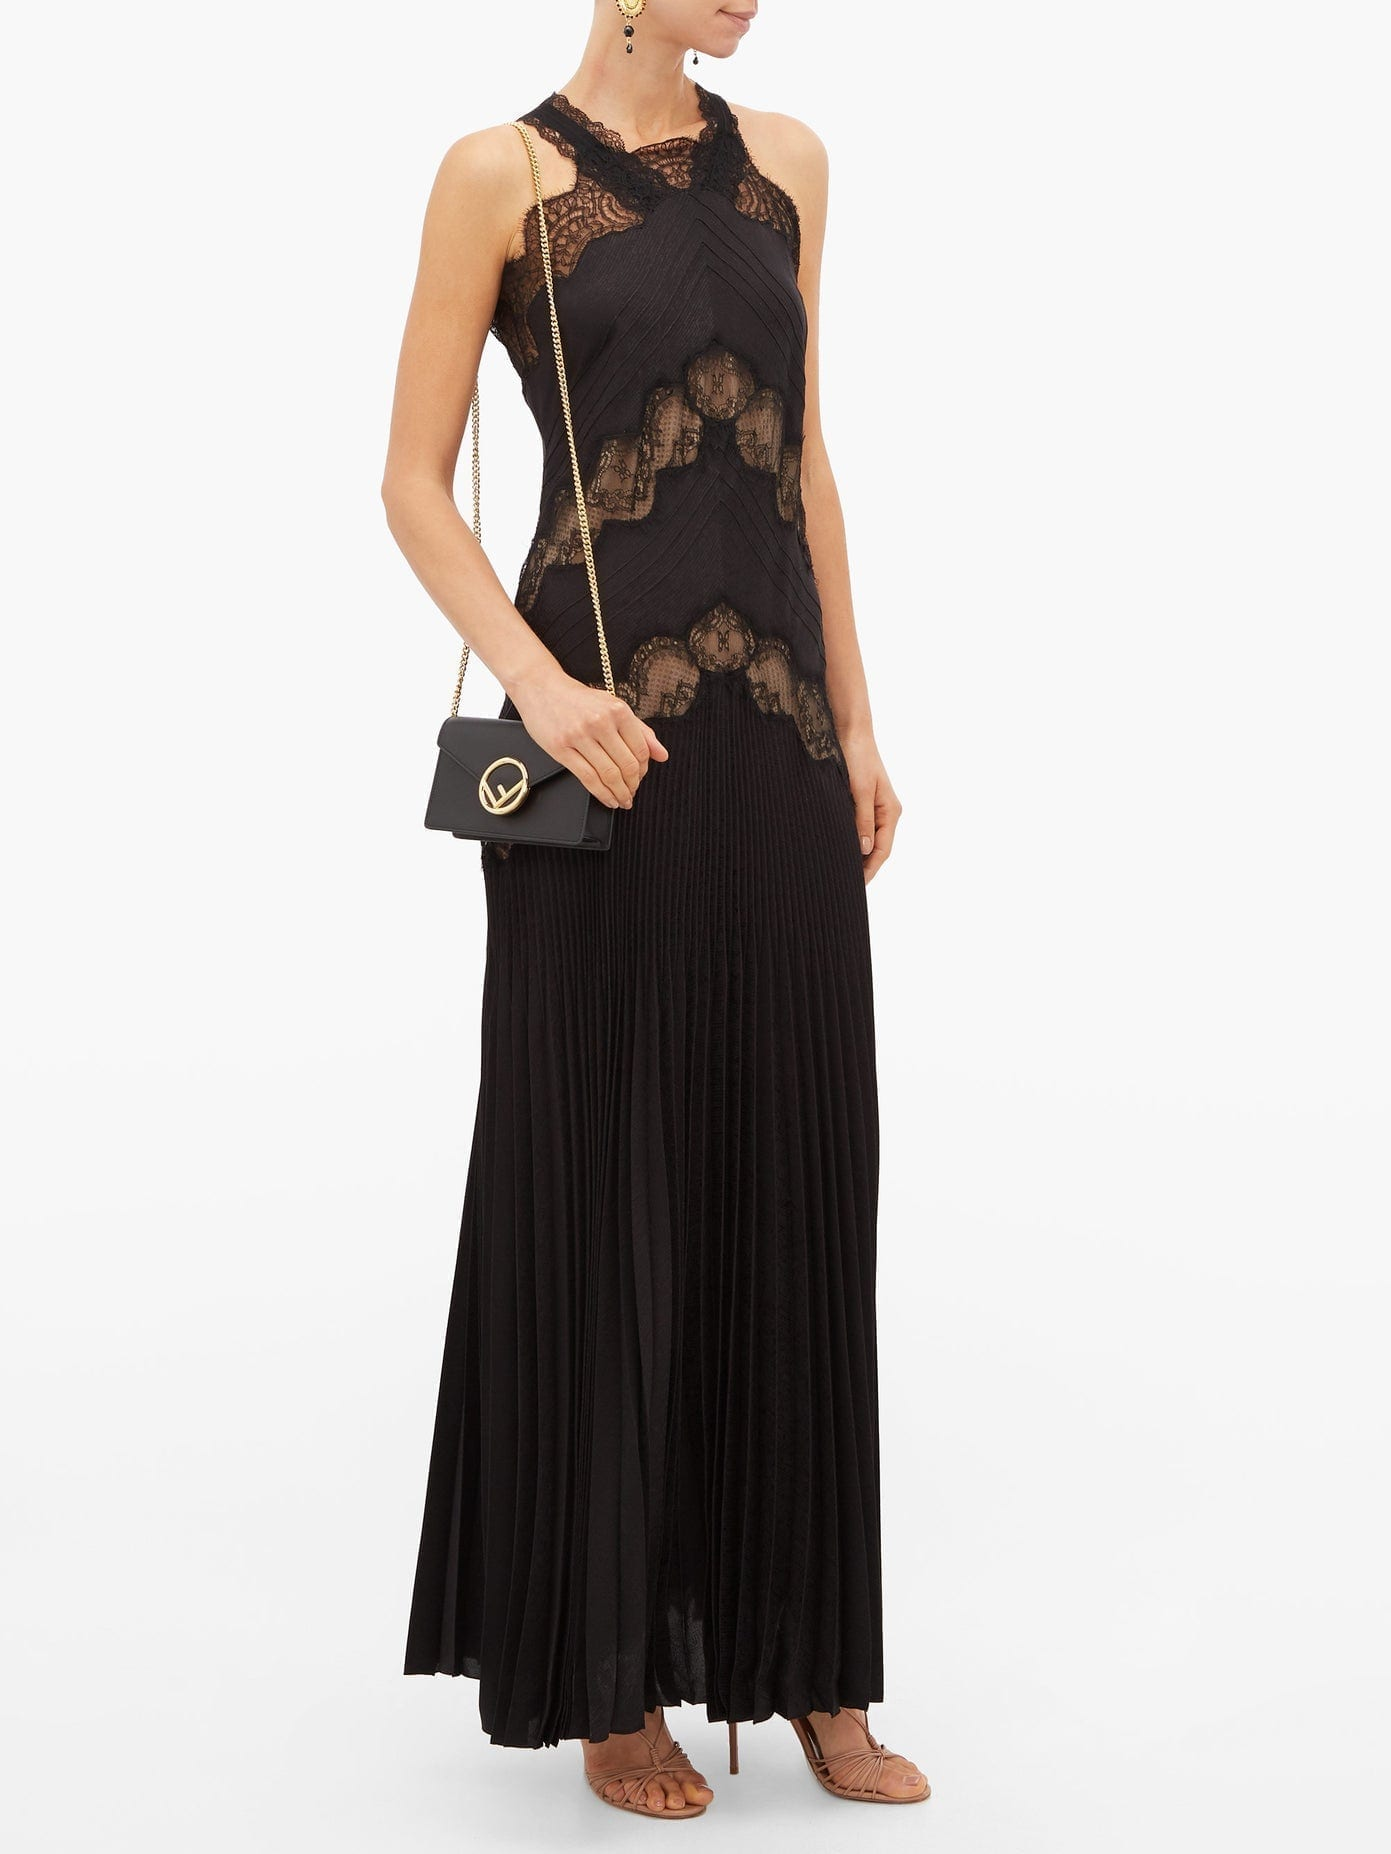 FENDI Lace-panelled Silk-jacquard Dress